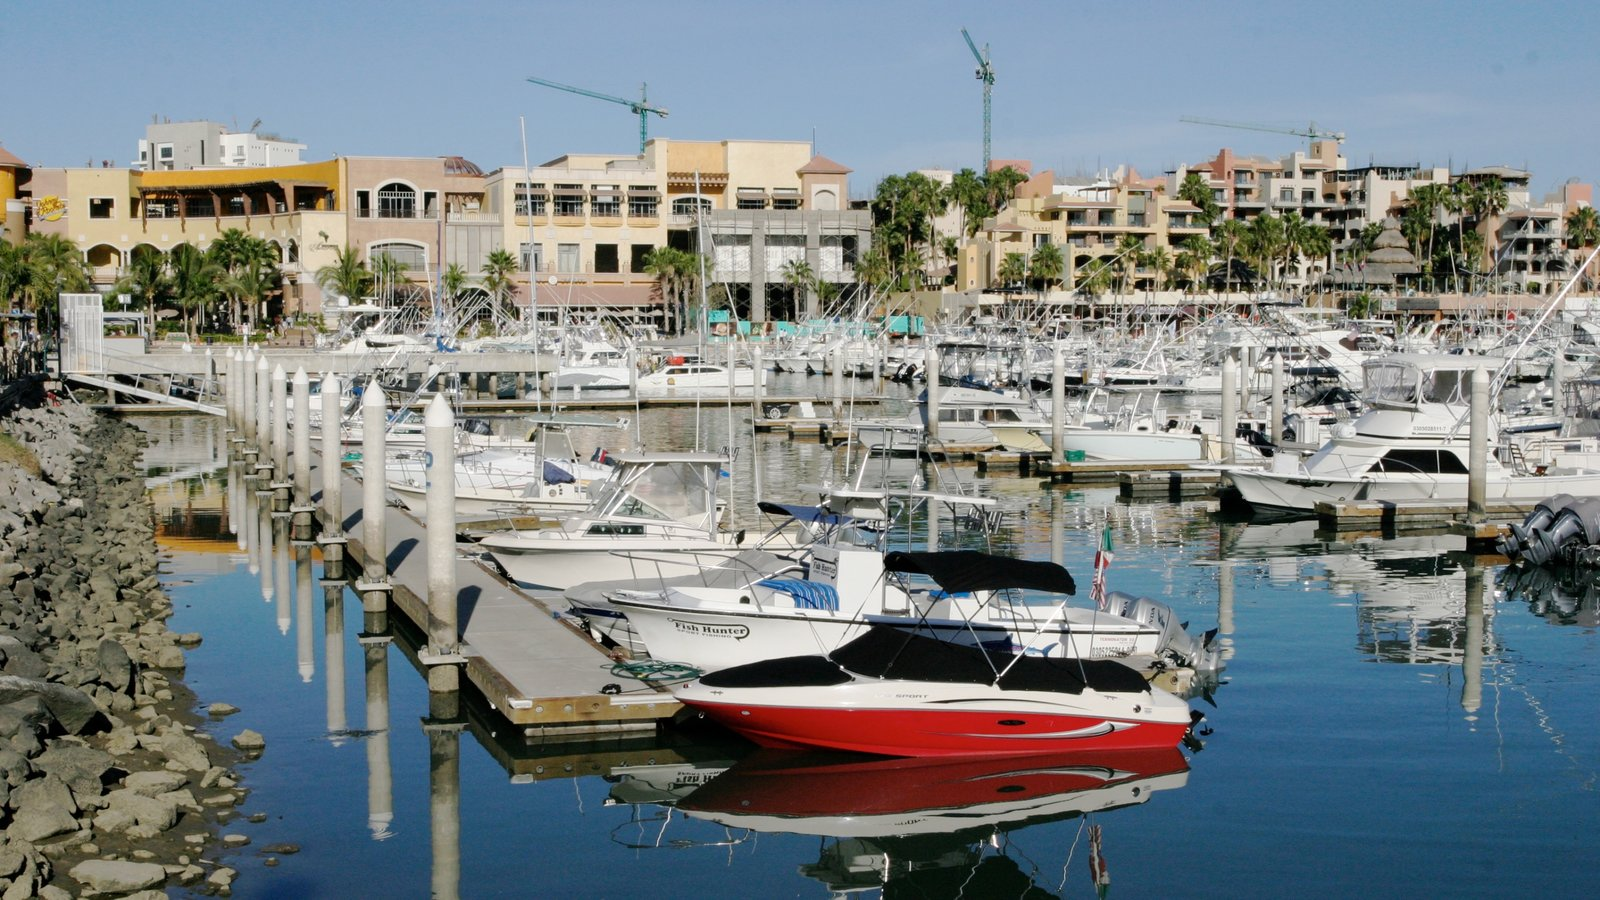 Cabo San Lucas featuring a coastal town, a bay or harbour and a marina